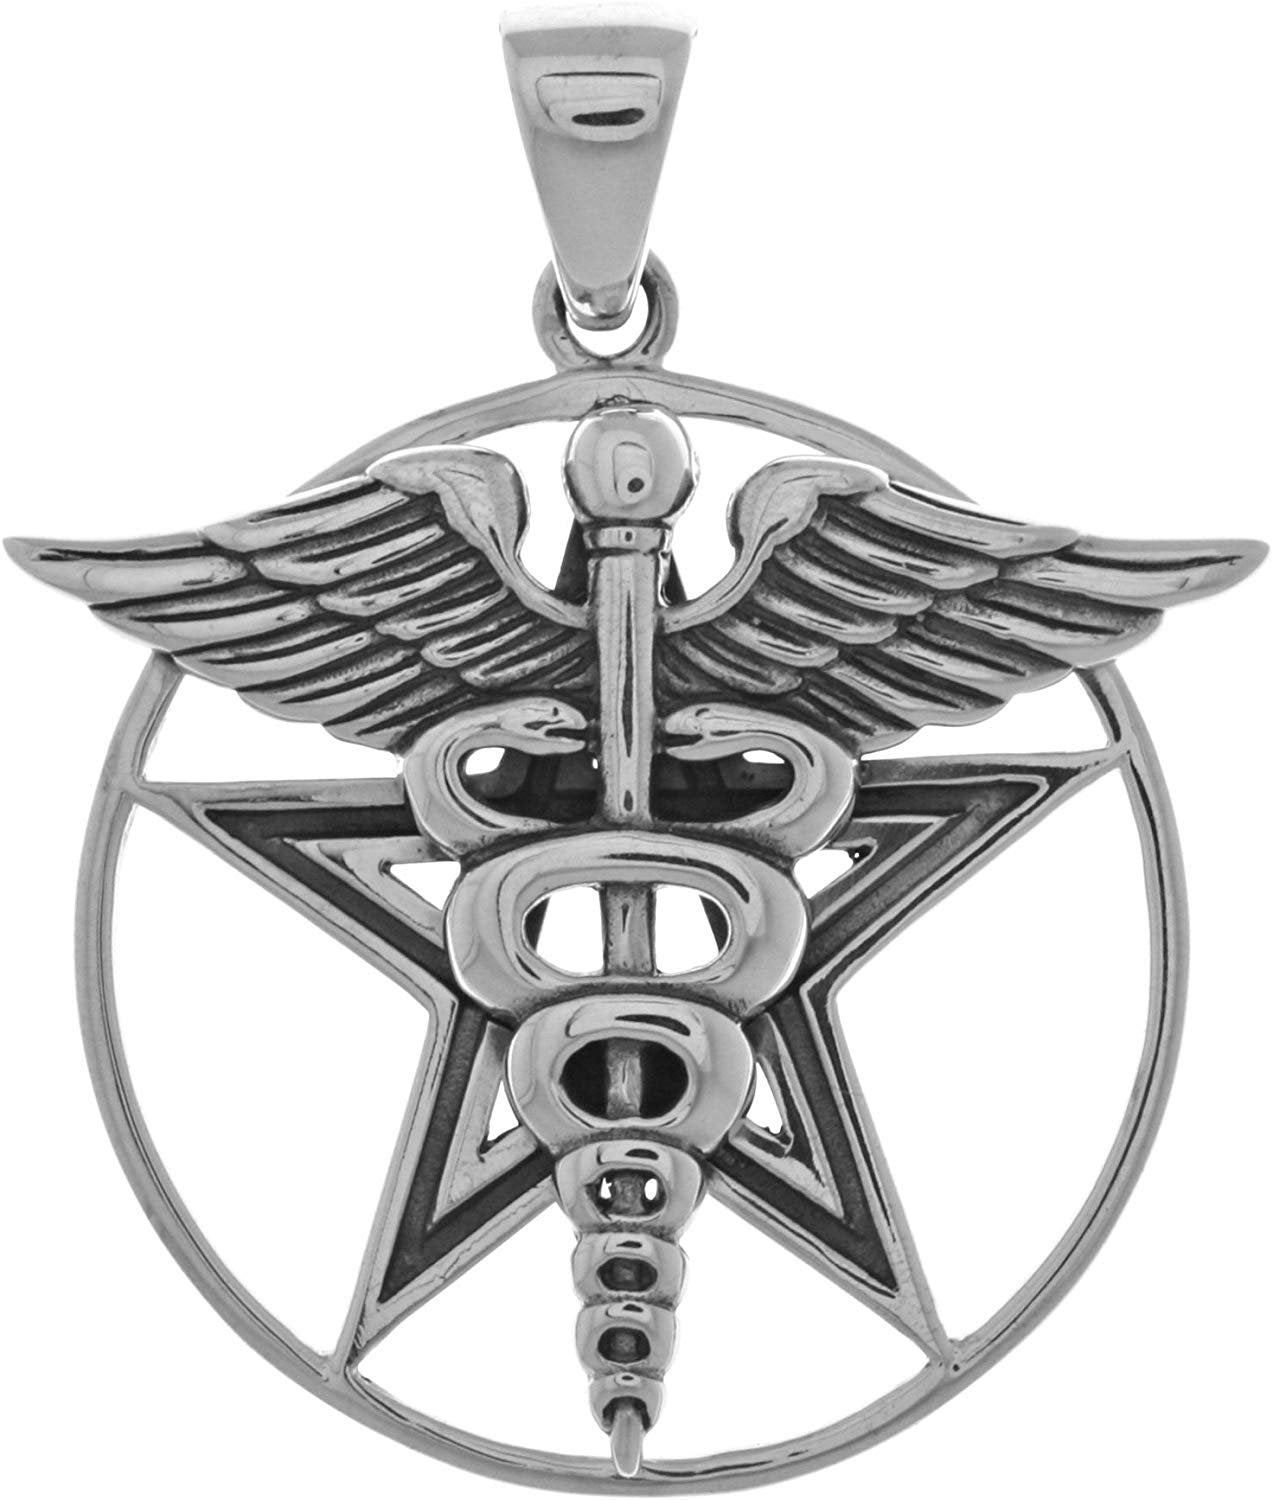 Jewelry Trends Caduceus Star Pentagram Pentacle Sterling Silver Pendant